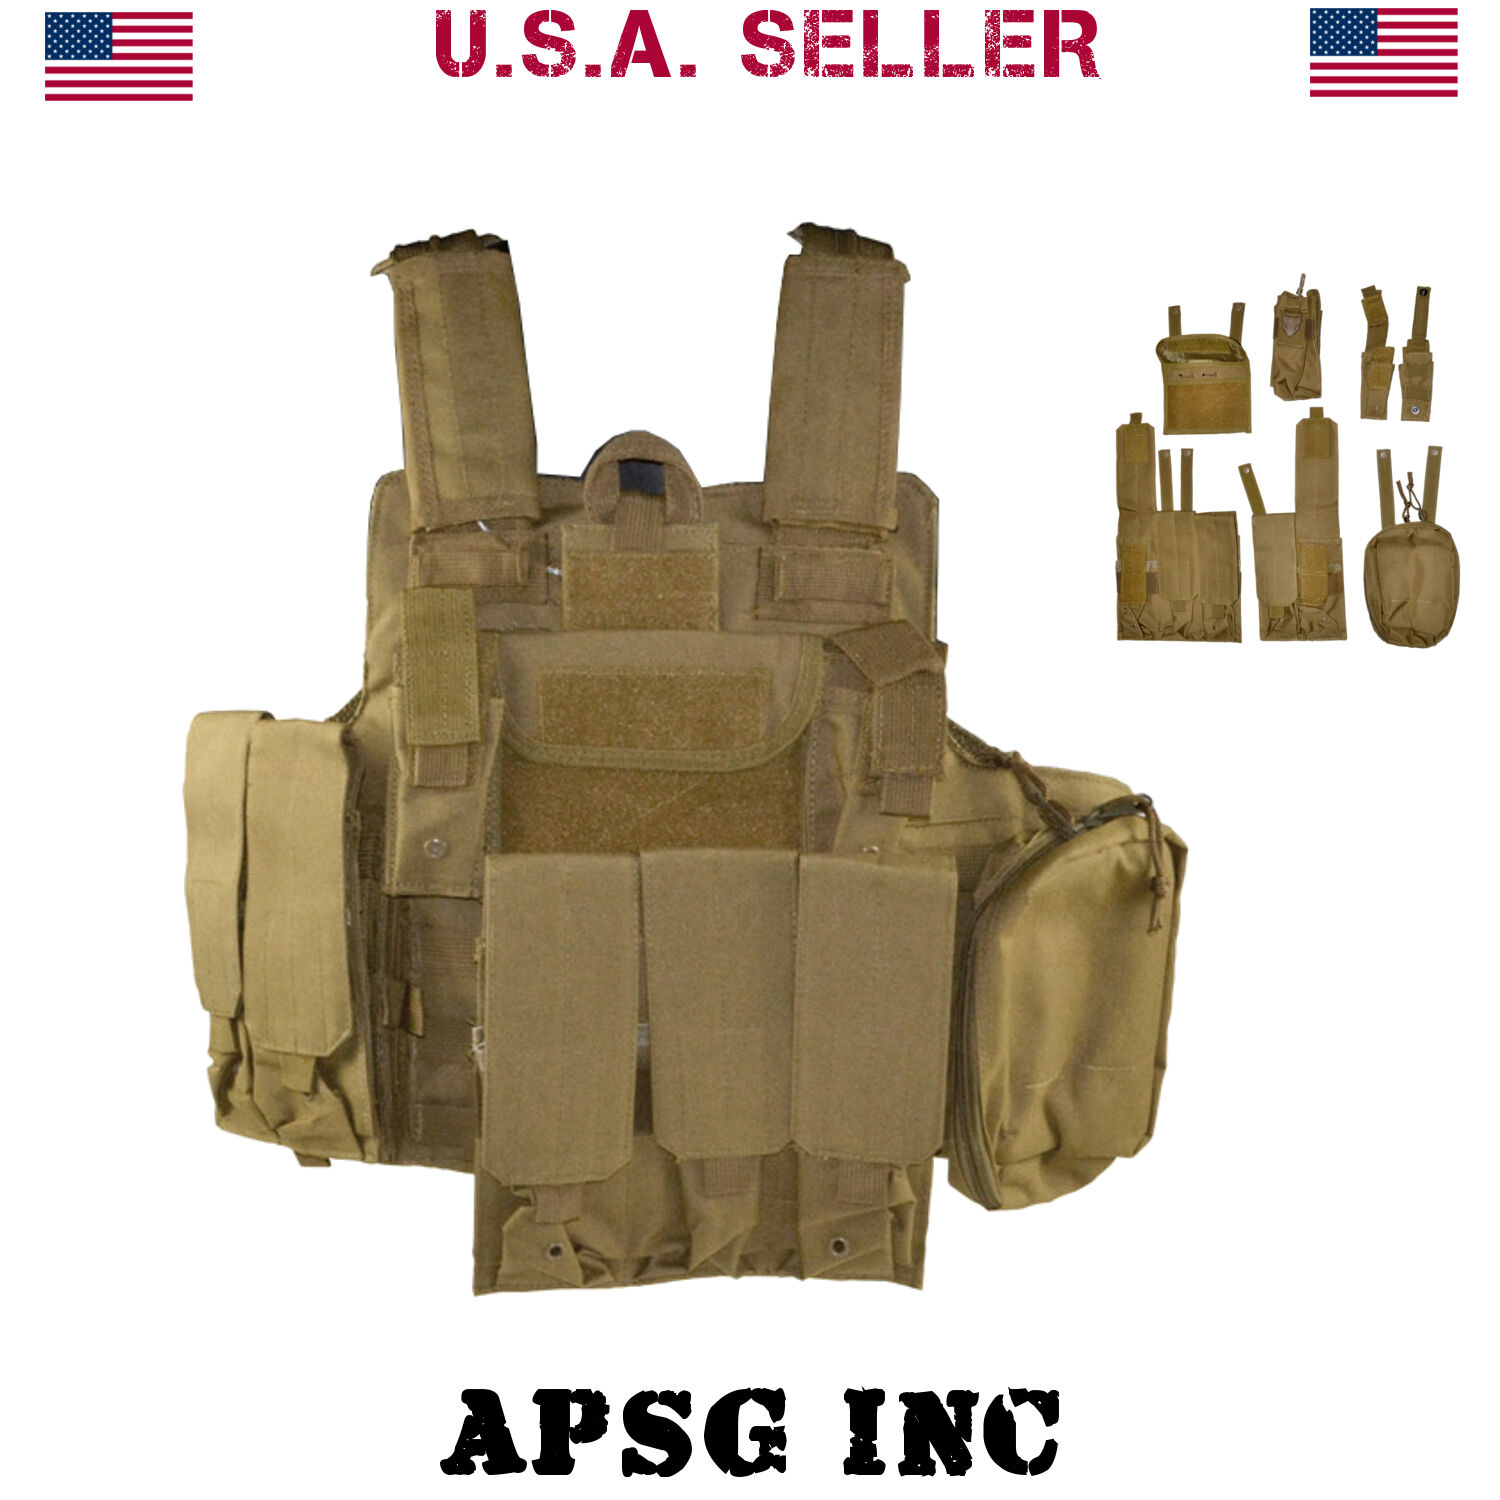 Sniper Military Tactical Molle Vest for Shooting Hunting X Draw w  7 Attachments